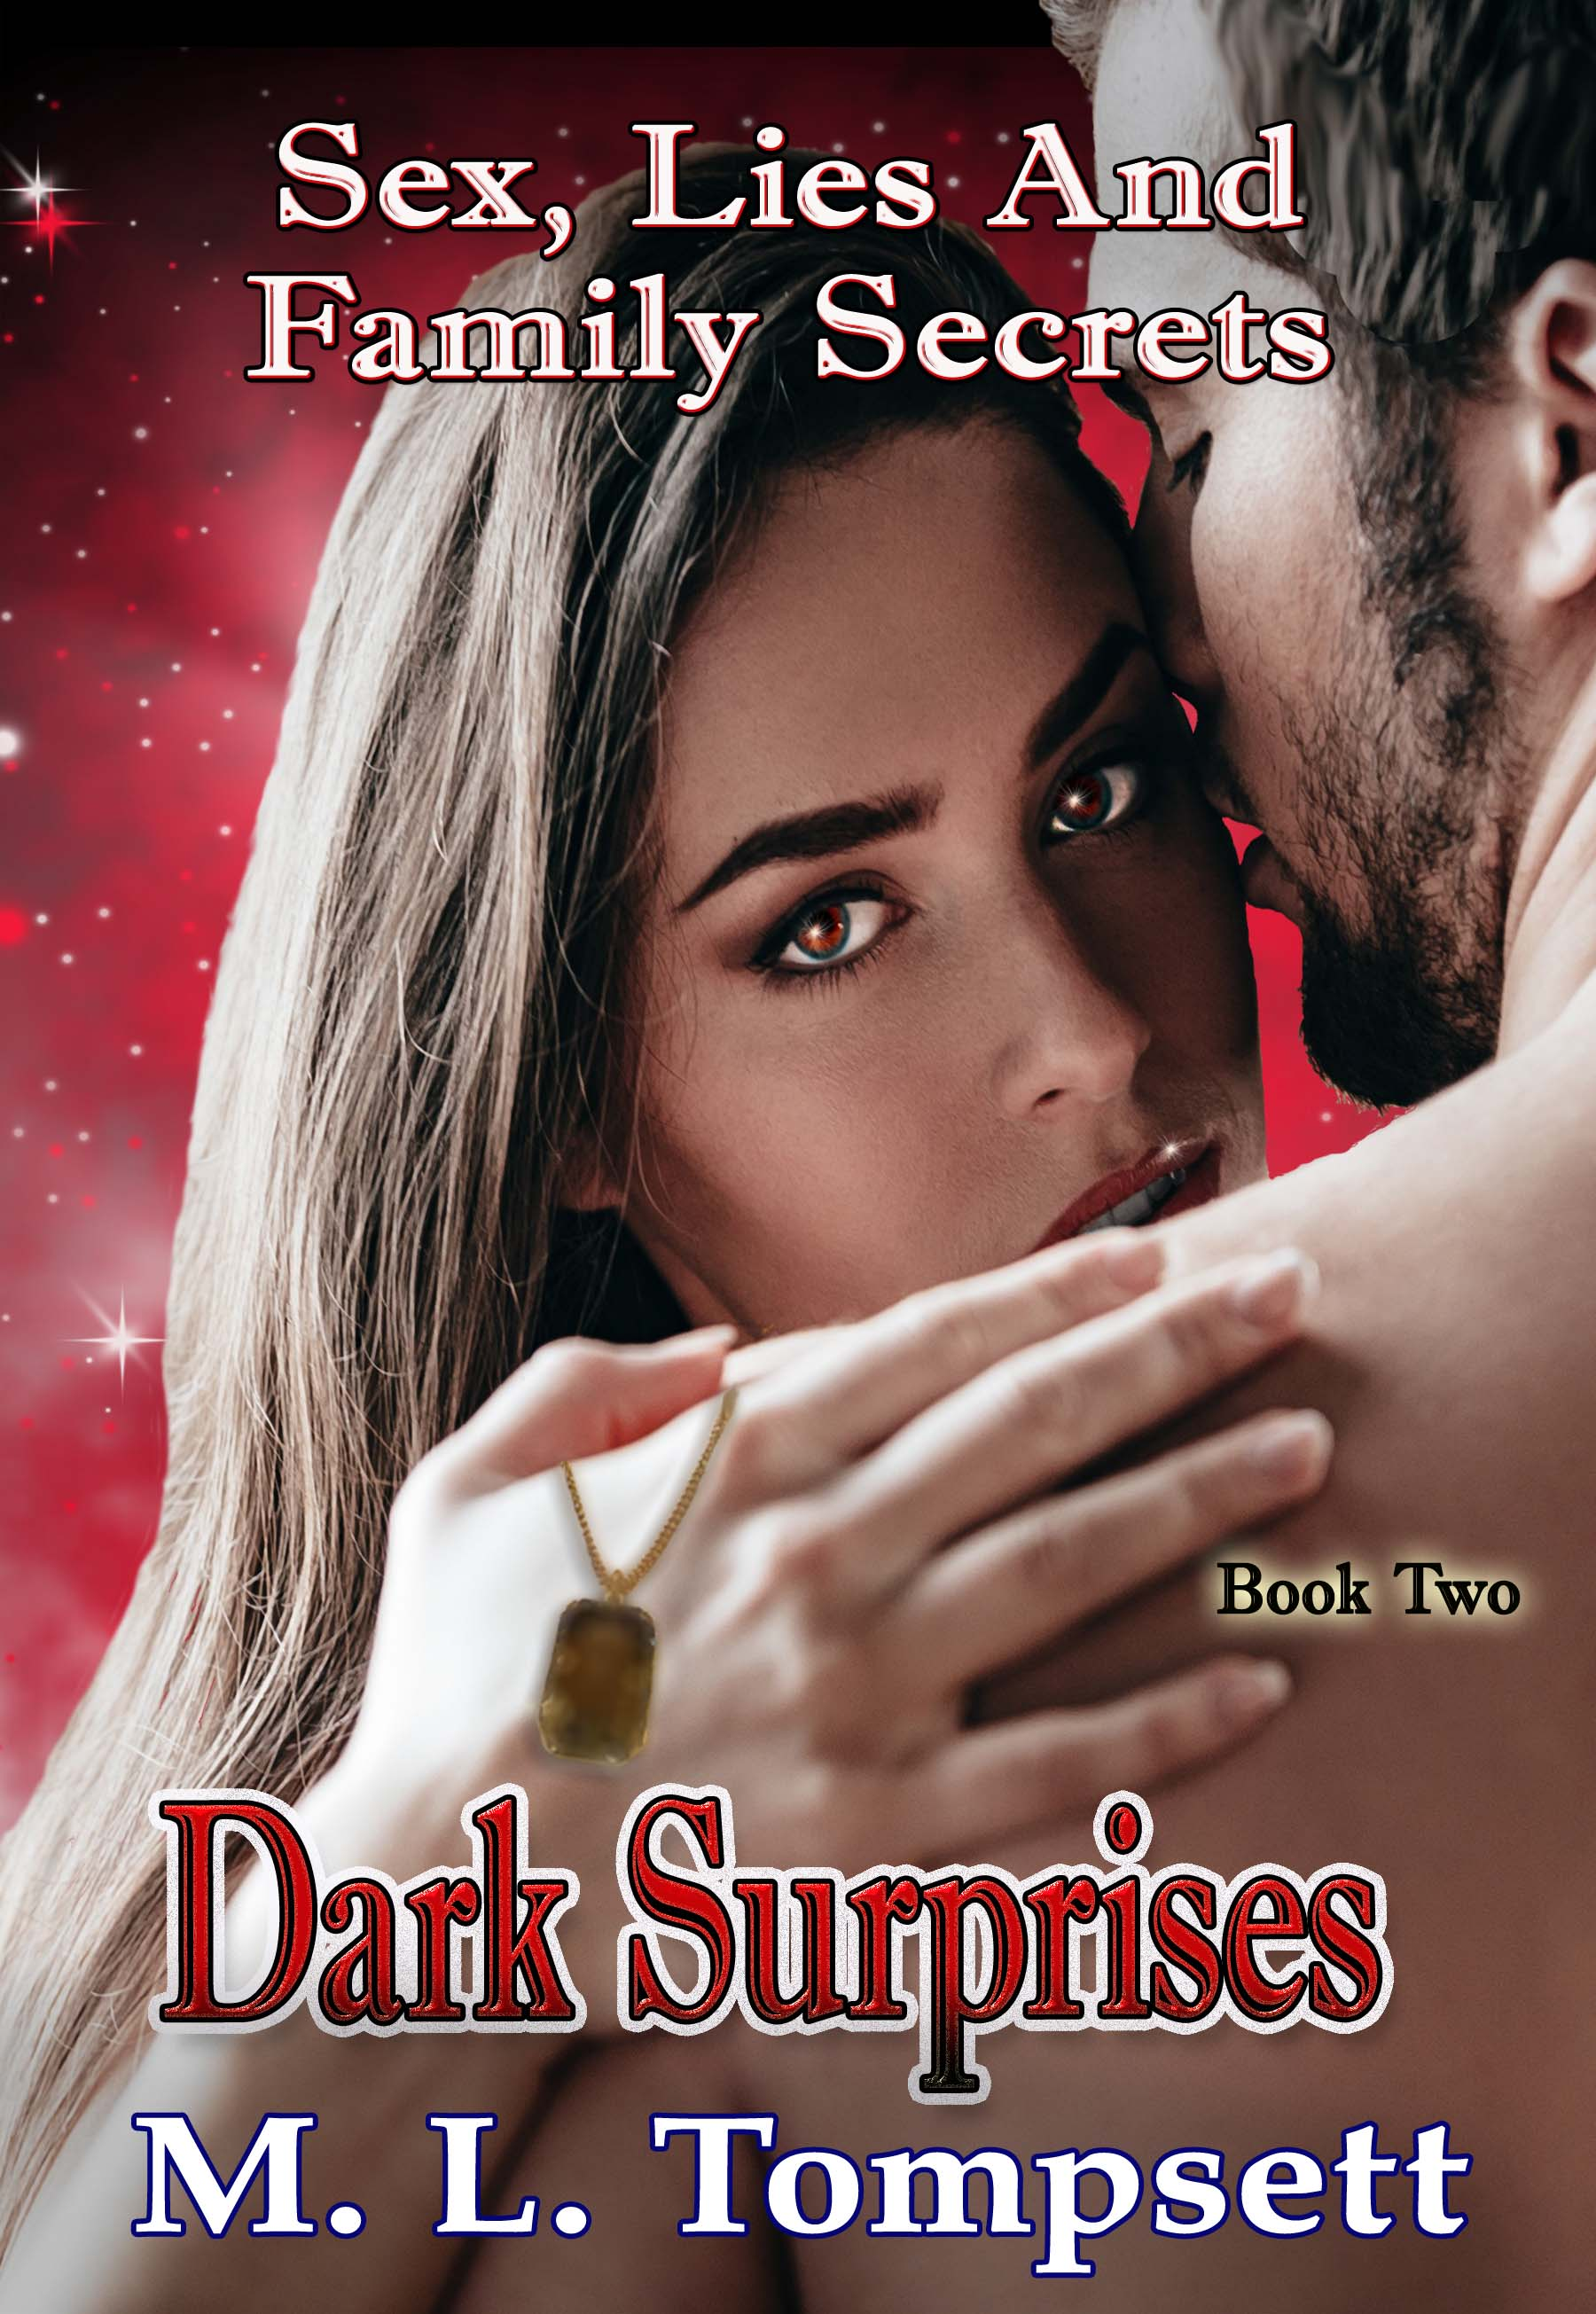 2nd bk Dark Suprises smaller ebookcoverfile 1800X2600 feb2018